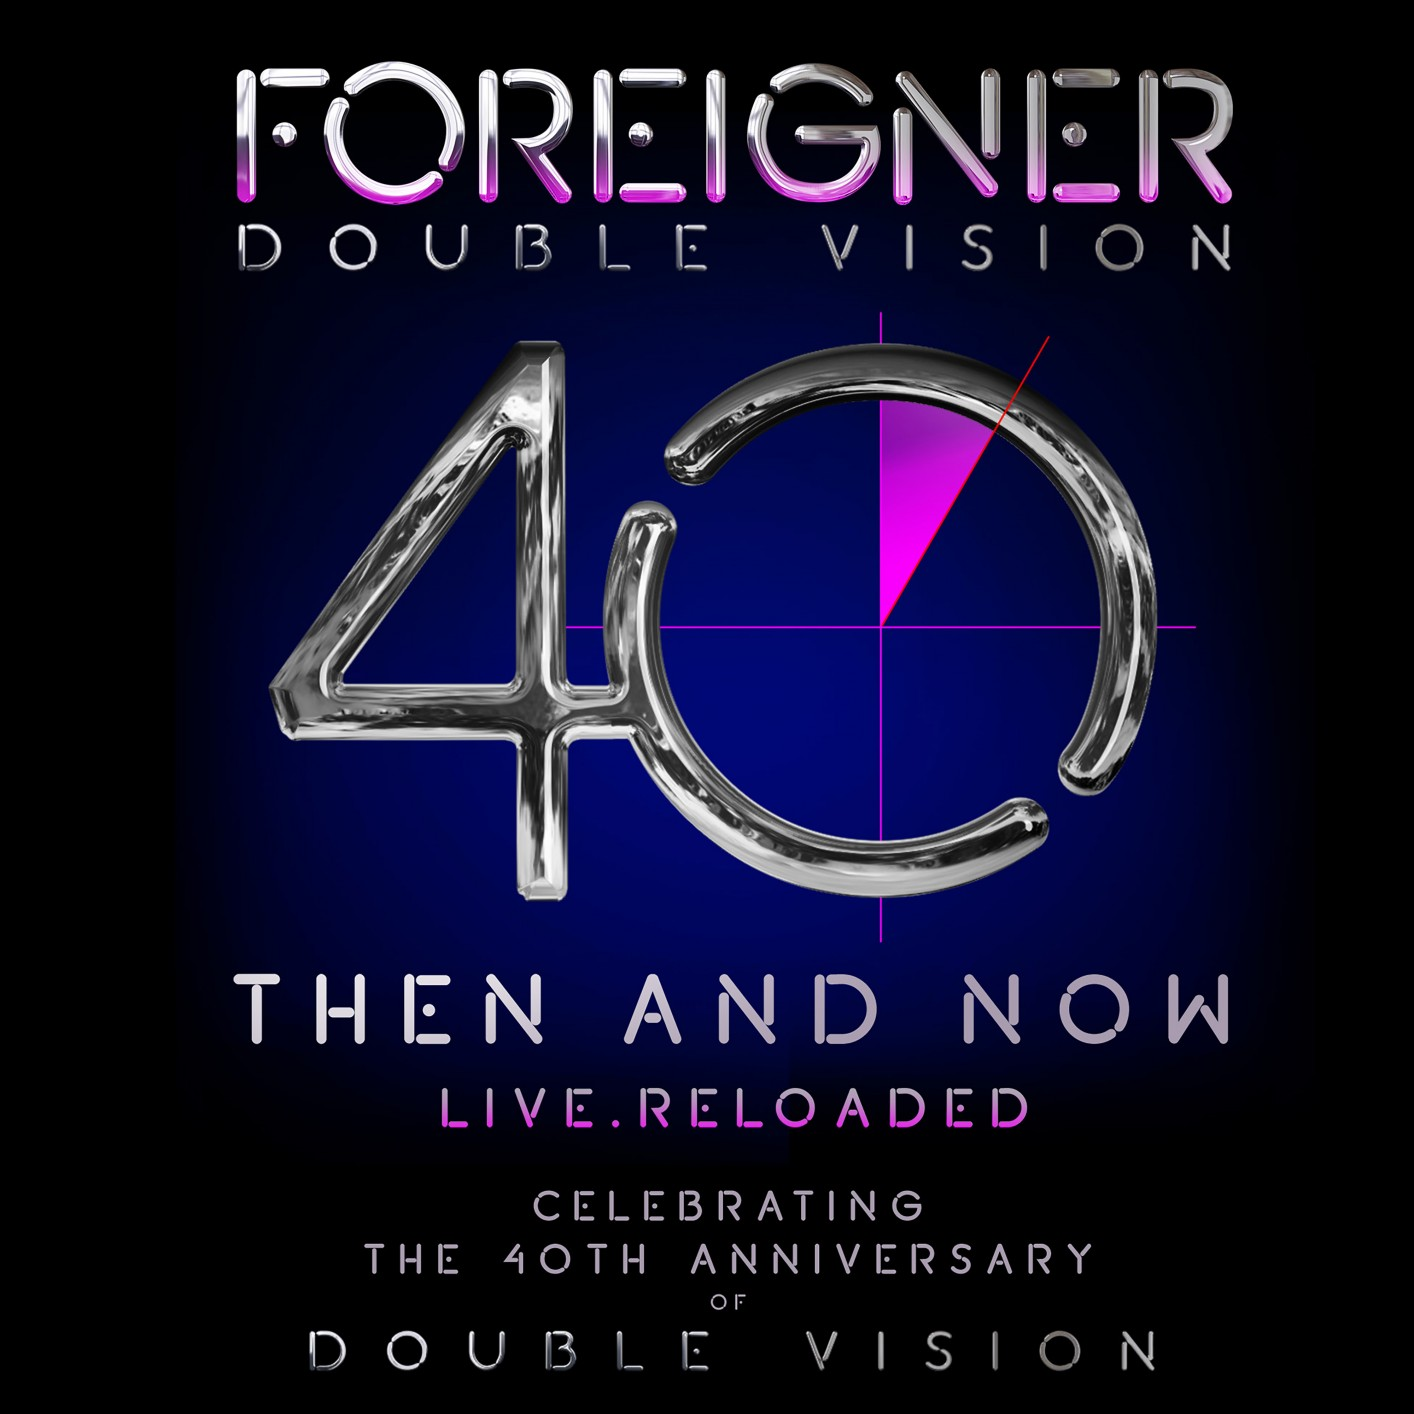 Foreigner - Double Vision: Then and Now (CD+DVD) (2019)